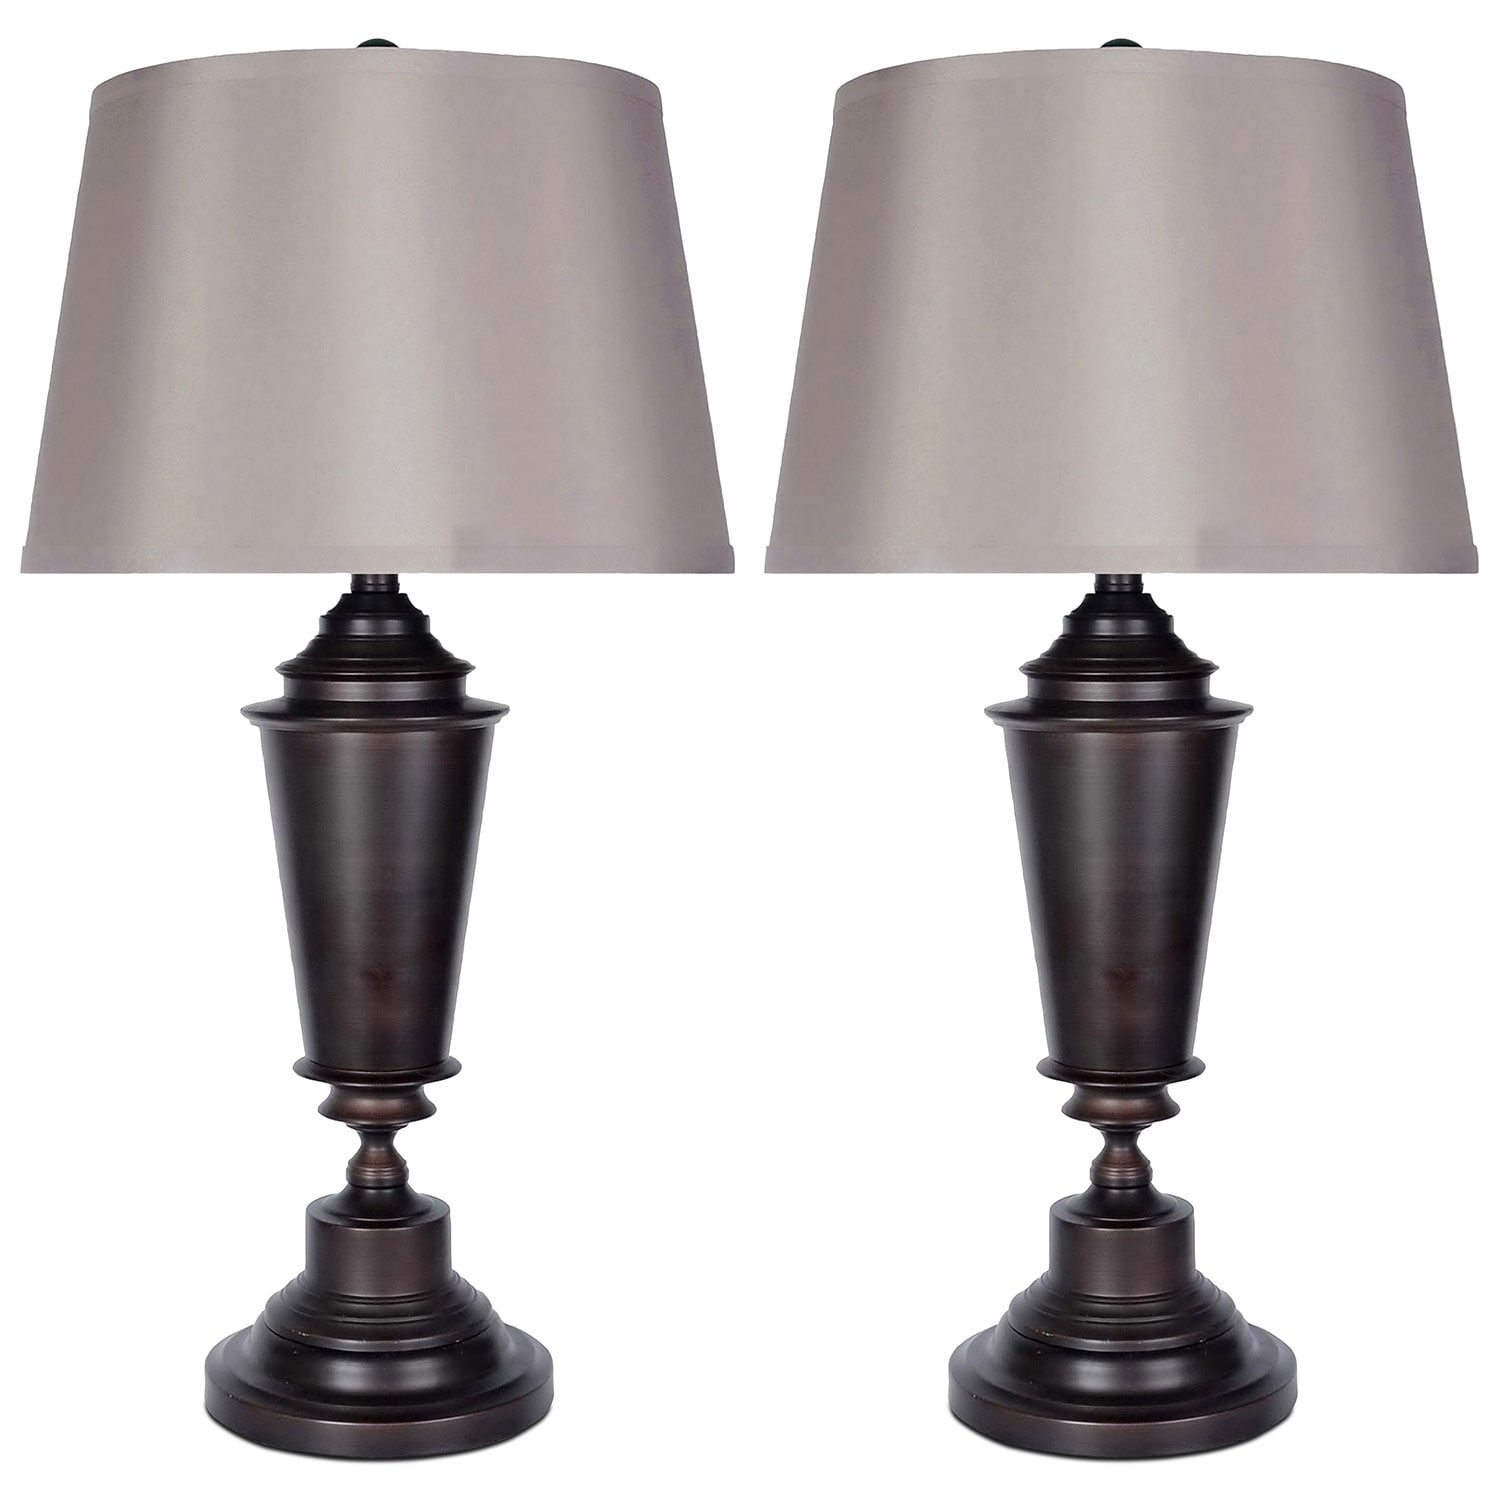 Home Accessories - Oil-Rubbed Bronze 2-Piece Table Lamps Set with Silk Shade